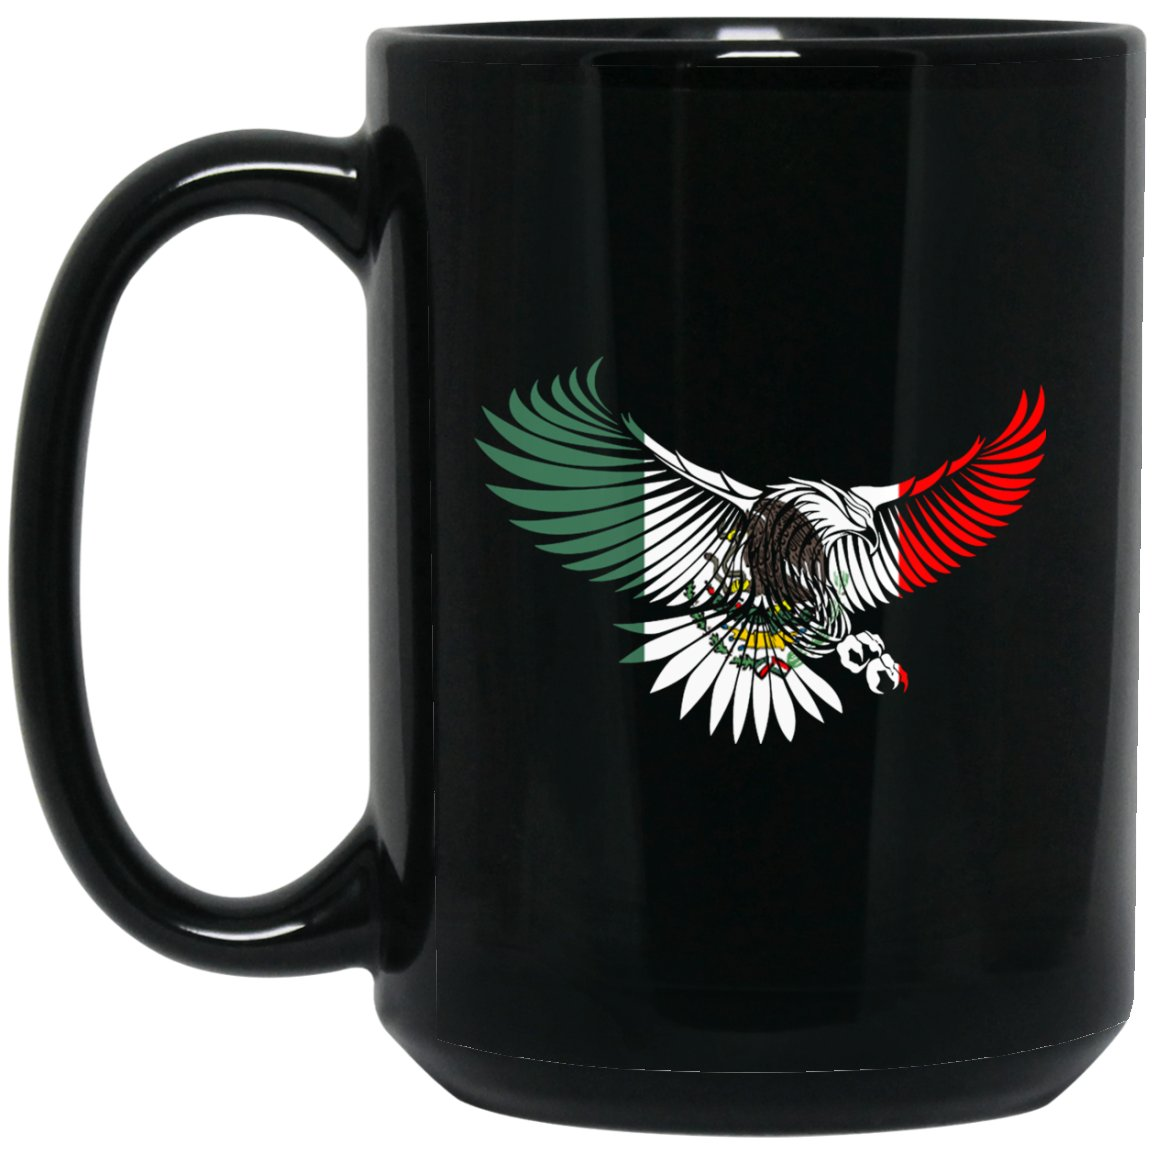 Cool Flying Eagle Coffee Mug Mexican Flag Mug for Mexican Pride Large Black Mug